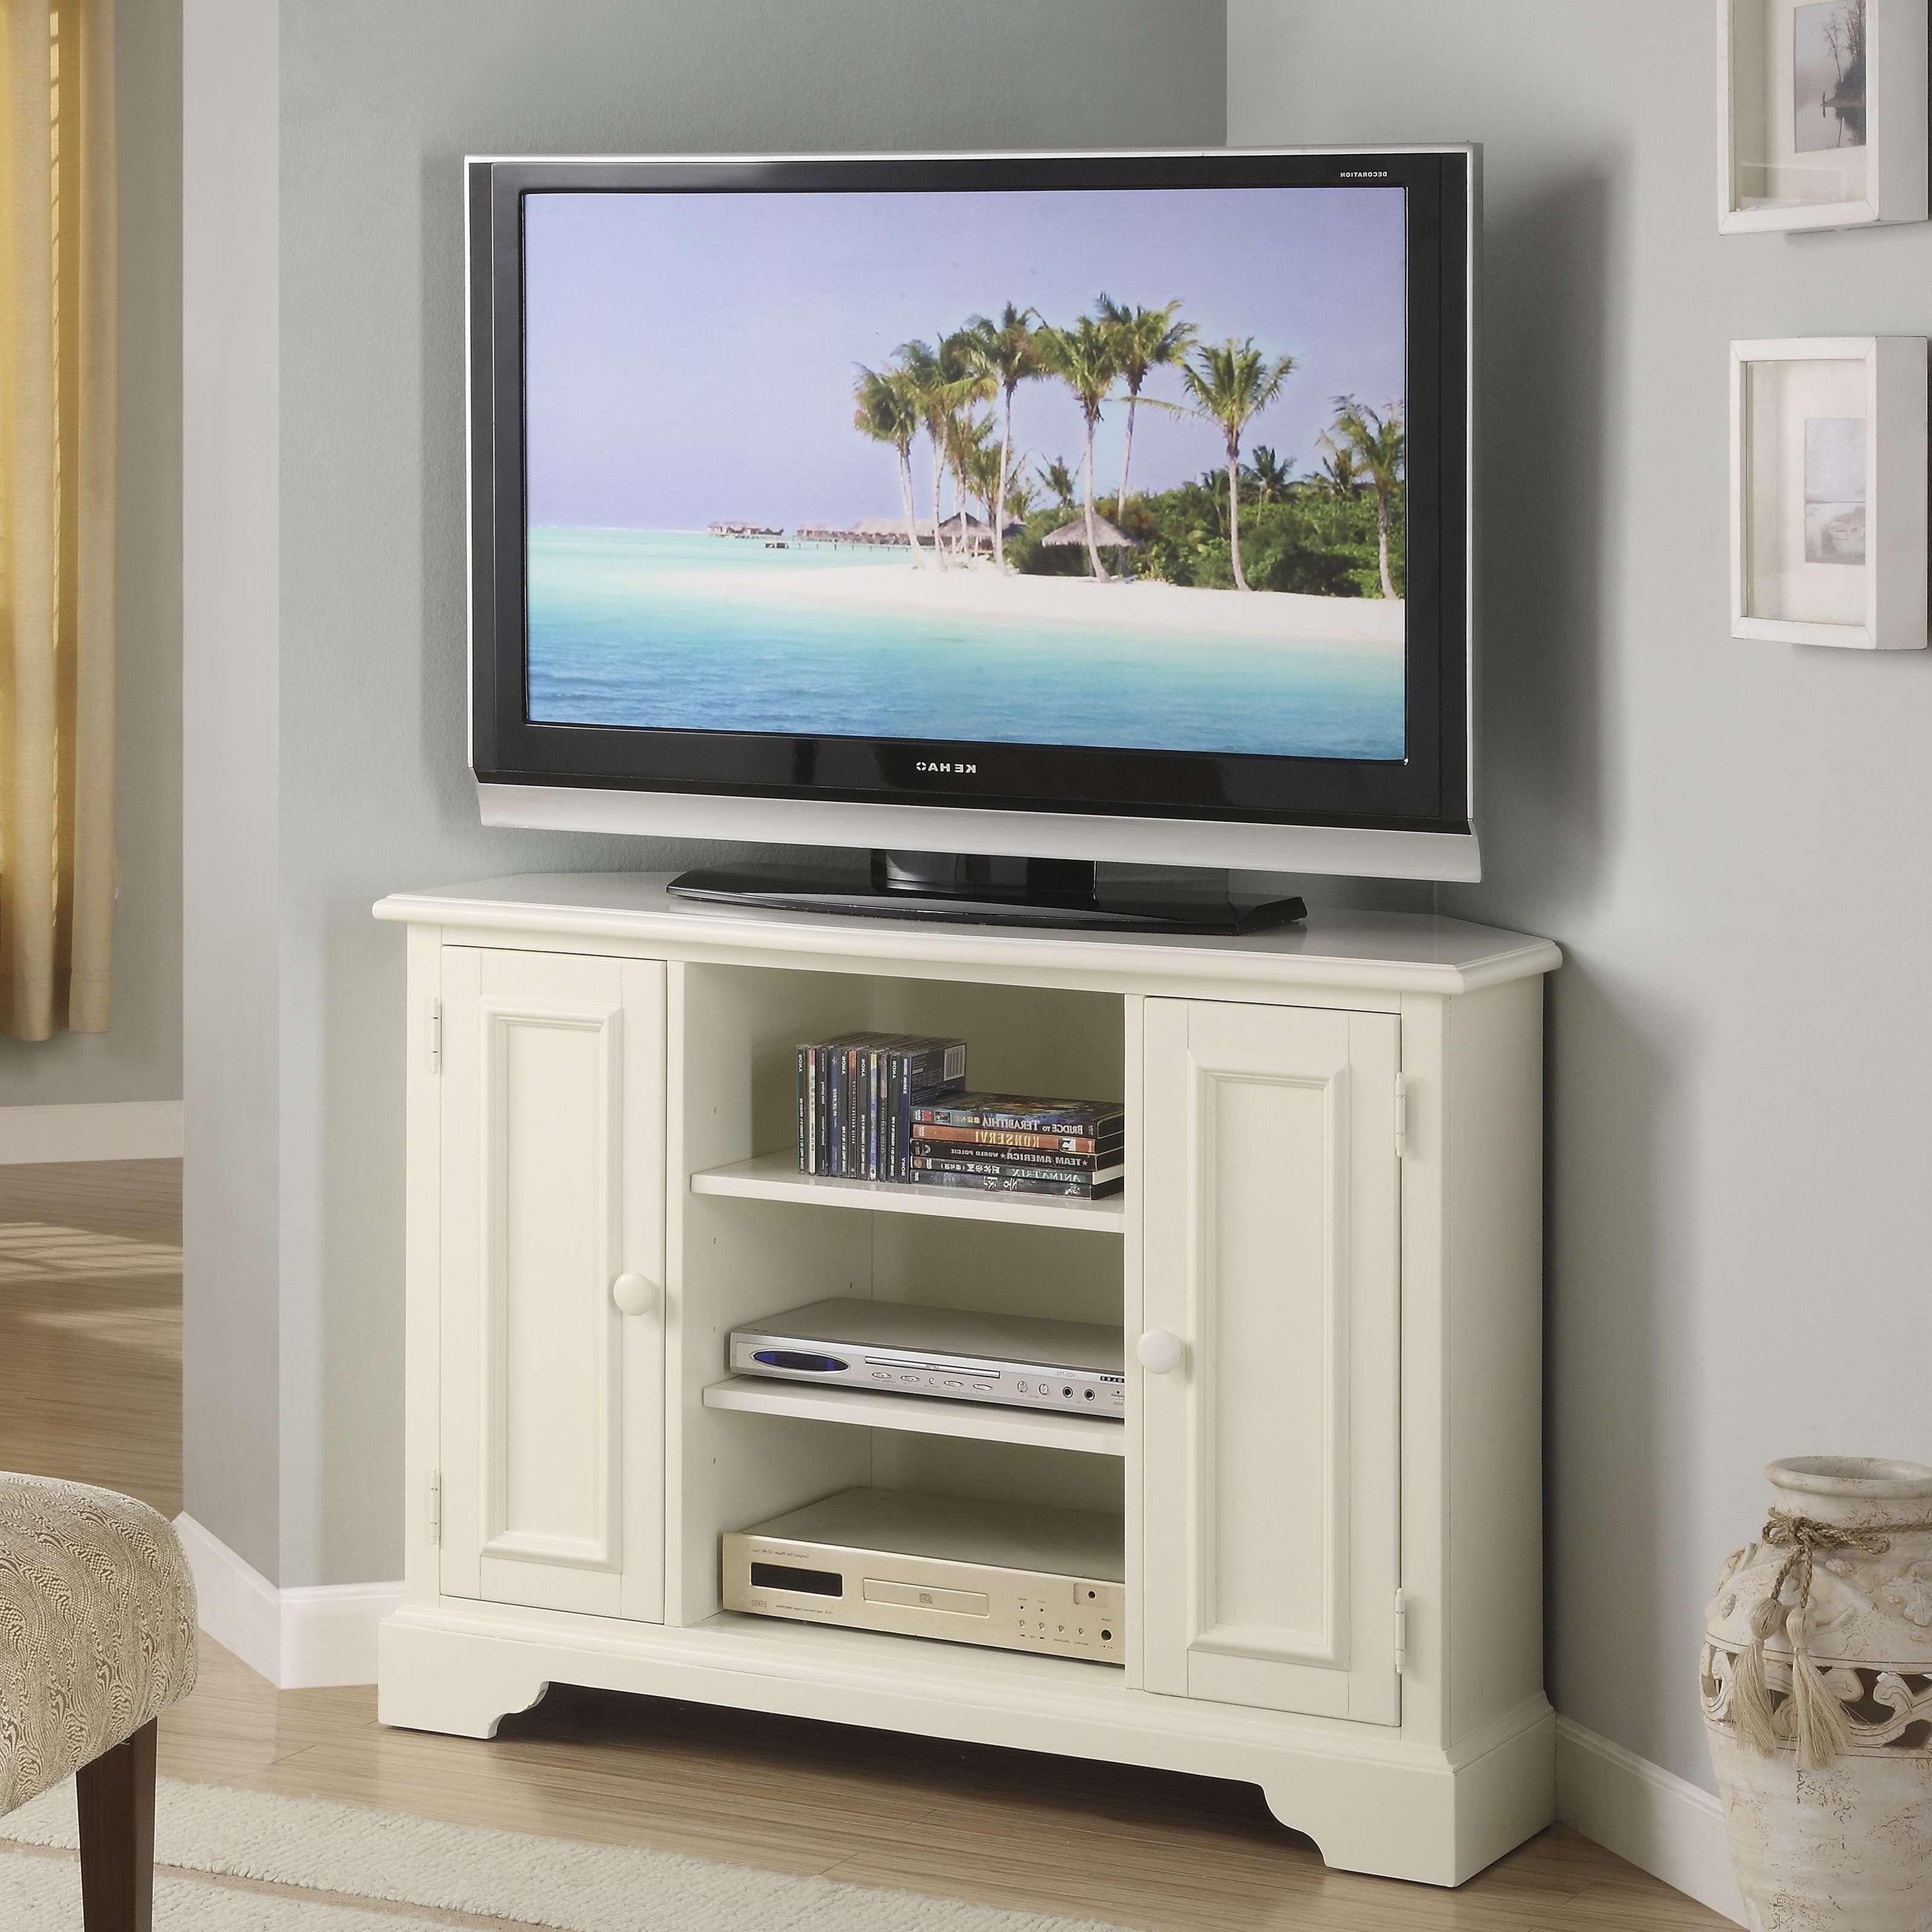 White Painted Mahogany Wood Corner Tvtand With Classicwing Tall With Regard To White Wood Corner Tv Stands (View 8 of 15)